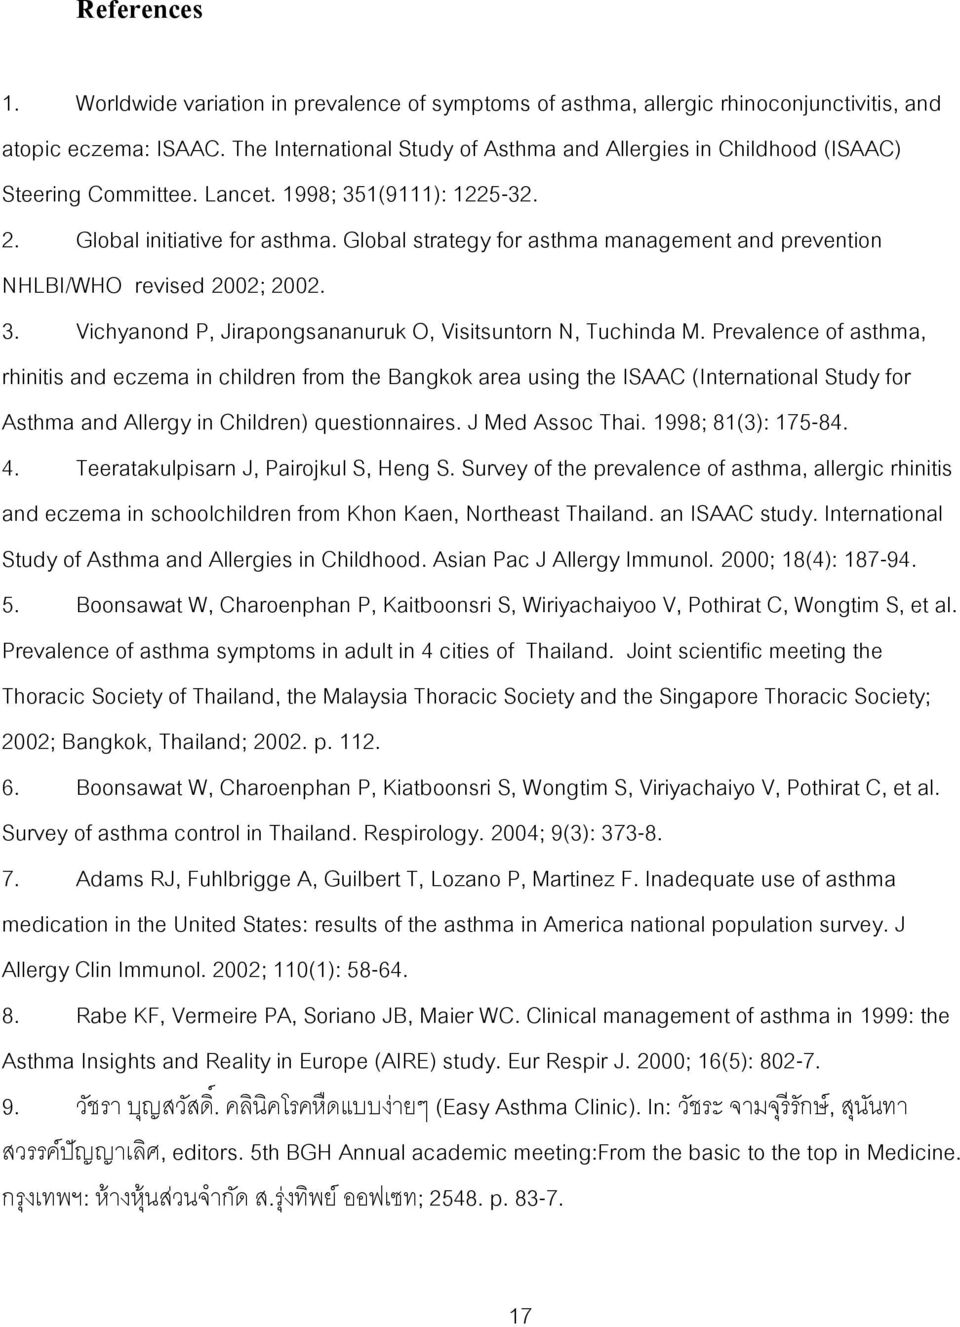 Global strategy for asthma management and prevention NHLBI/WHO revised 2002; 2002. 3. Vichyanond P, Jirapongsananuruk O, Visitsuntorn N, Tuchinda M.